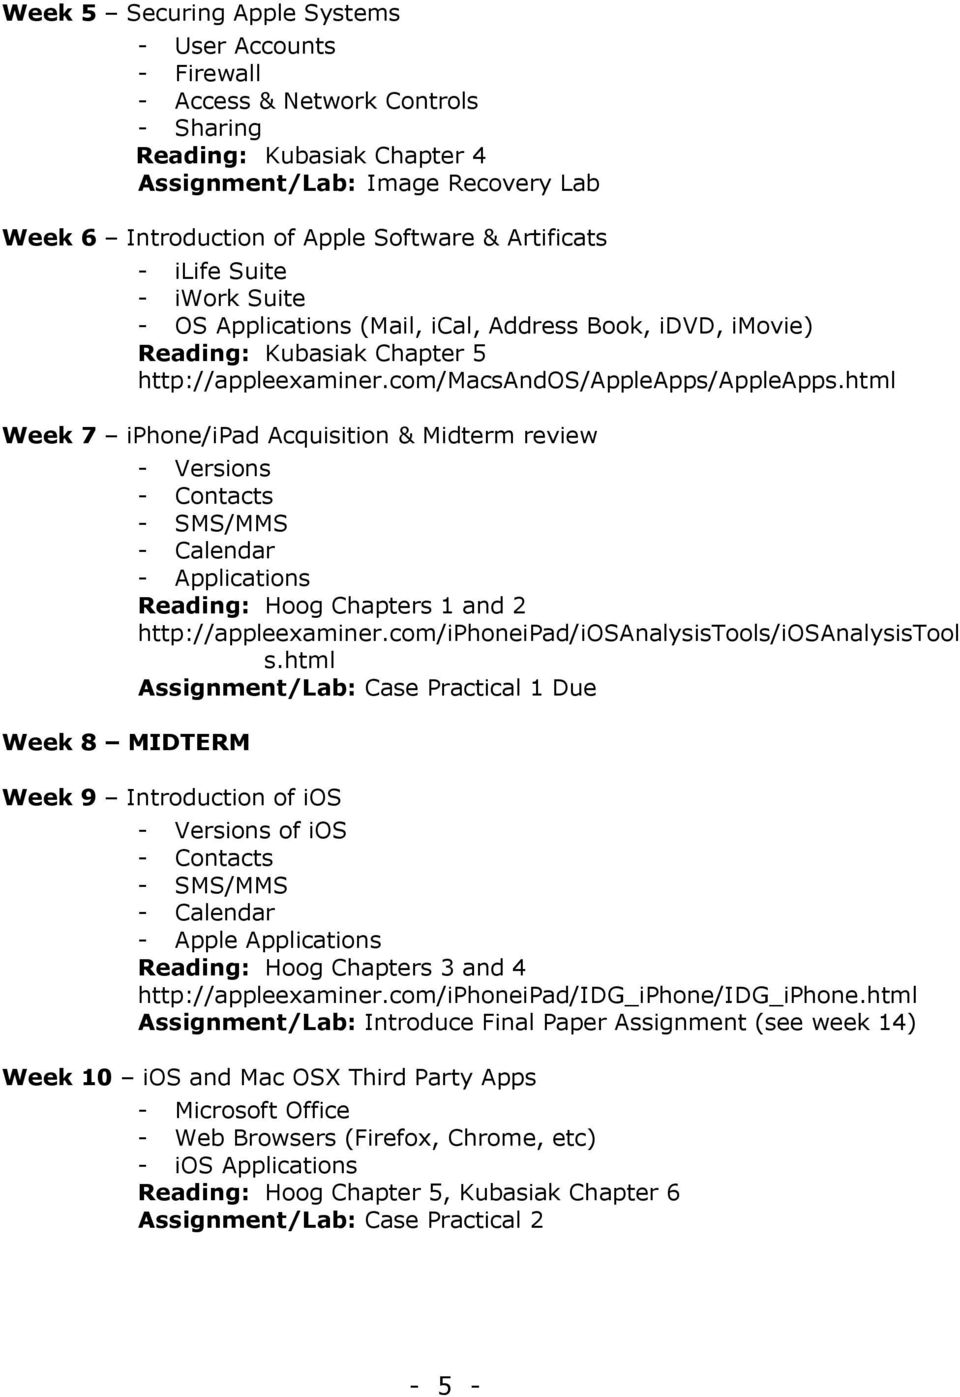 html Week 7 iphone/ipad Acquisition & Midterm review Week 8 MIDTERM - Versions - Contacts - SMS/MMS - Calendar - Applications Reading: Hoog Chapters 1 and 2 http://appleexaminer.